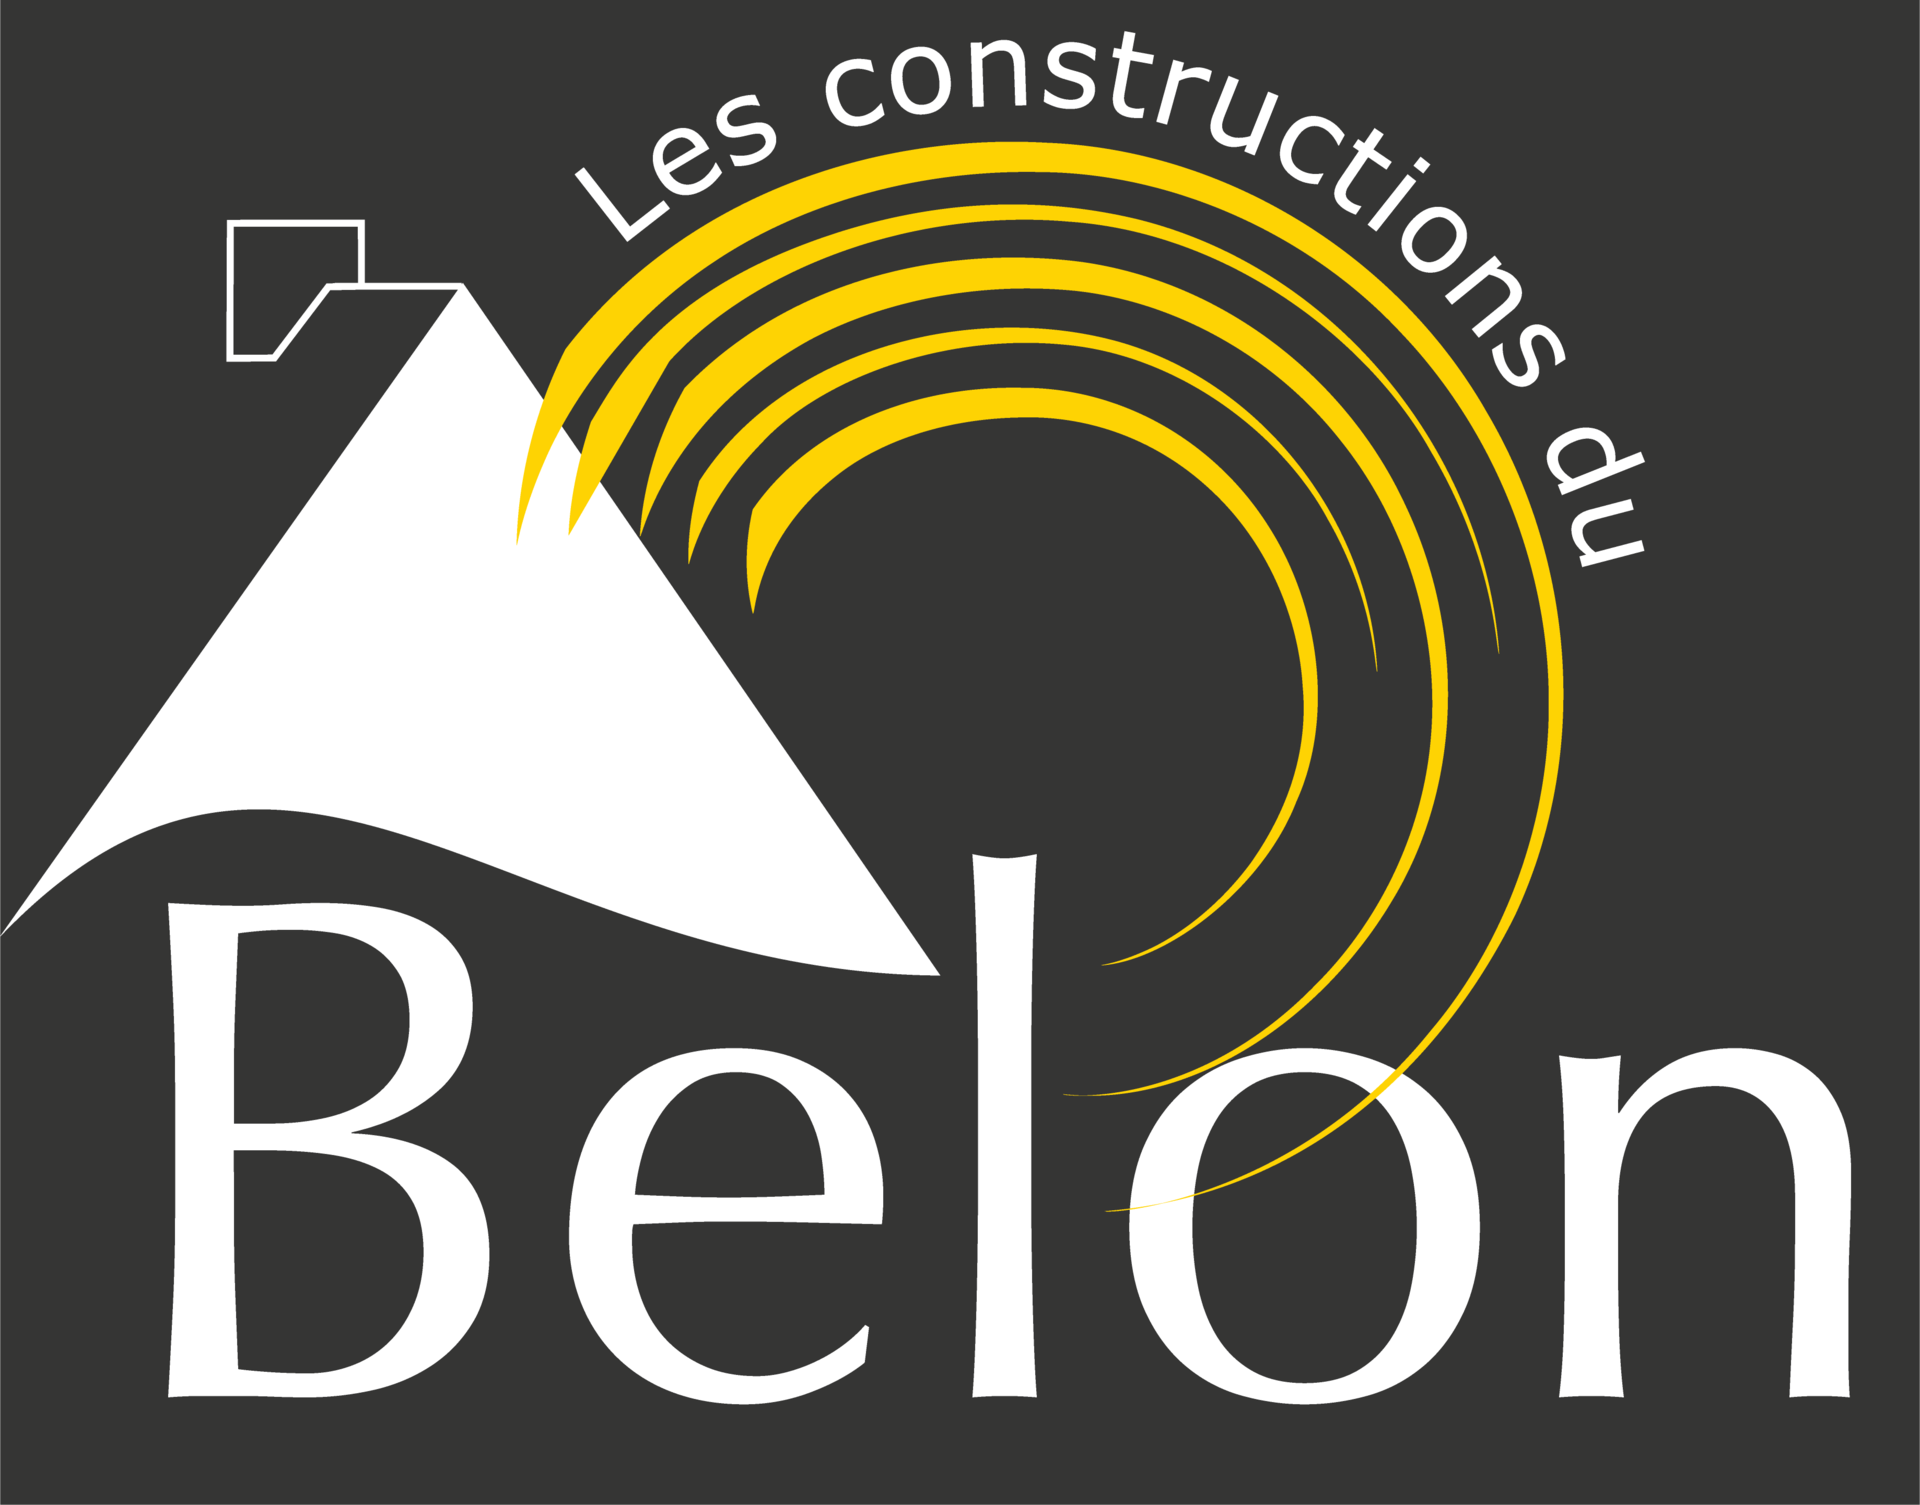 adhérent  CONSTRUCTIONS DU BELON